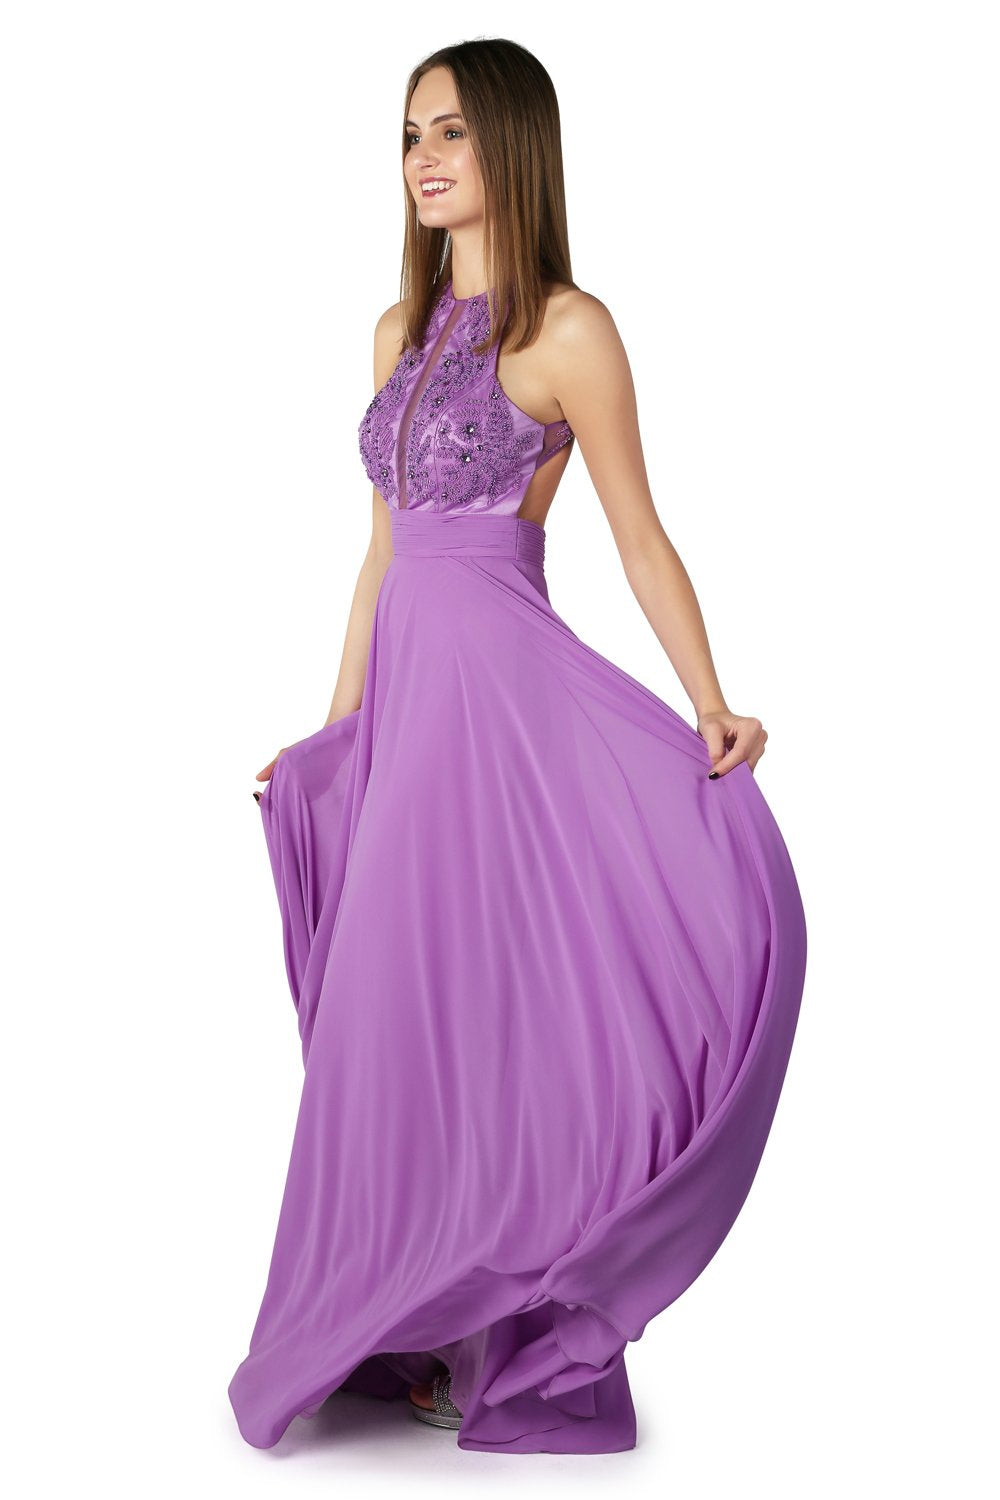 Jaya Lavender Long Gown - Gissings Boutique